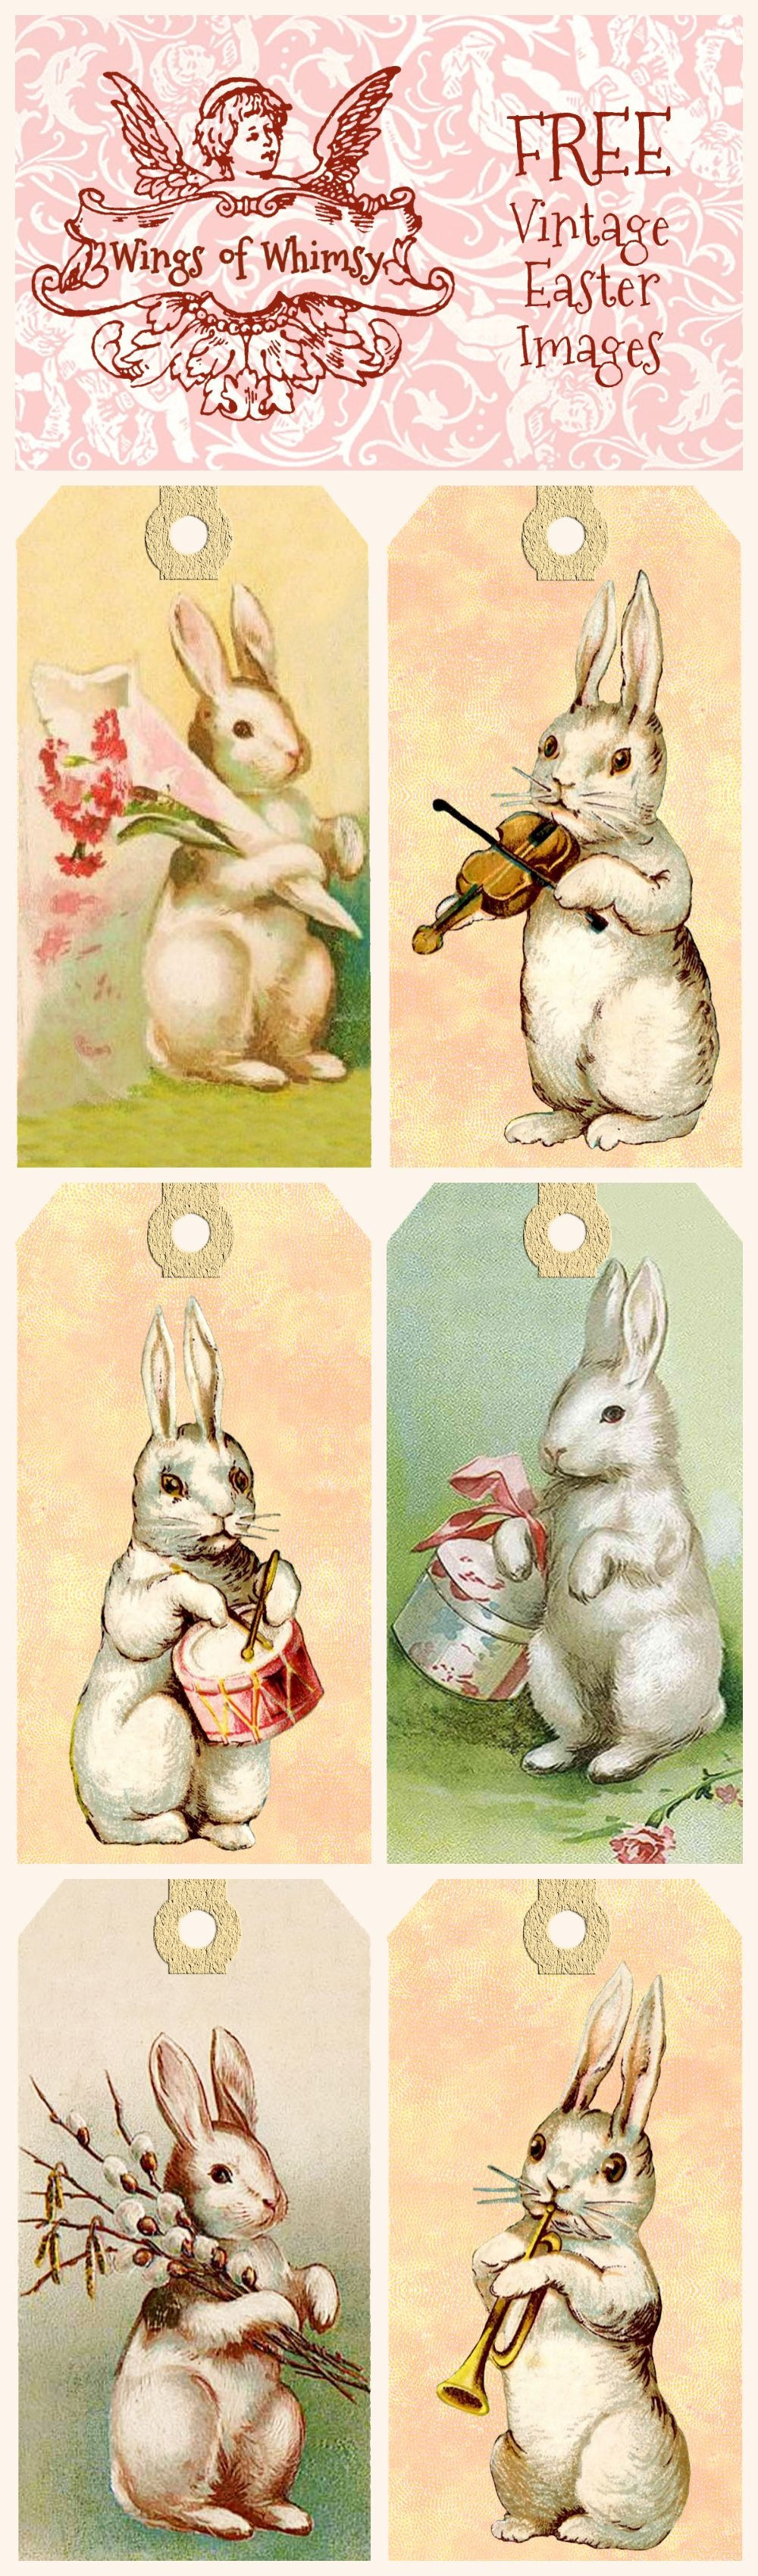 Vintage Easter Bunny Tags – Free Printables | Easter | Easter Crafts - Free Printable Vintage Easter Images